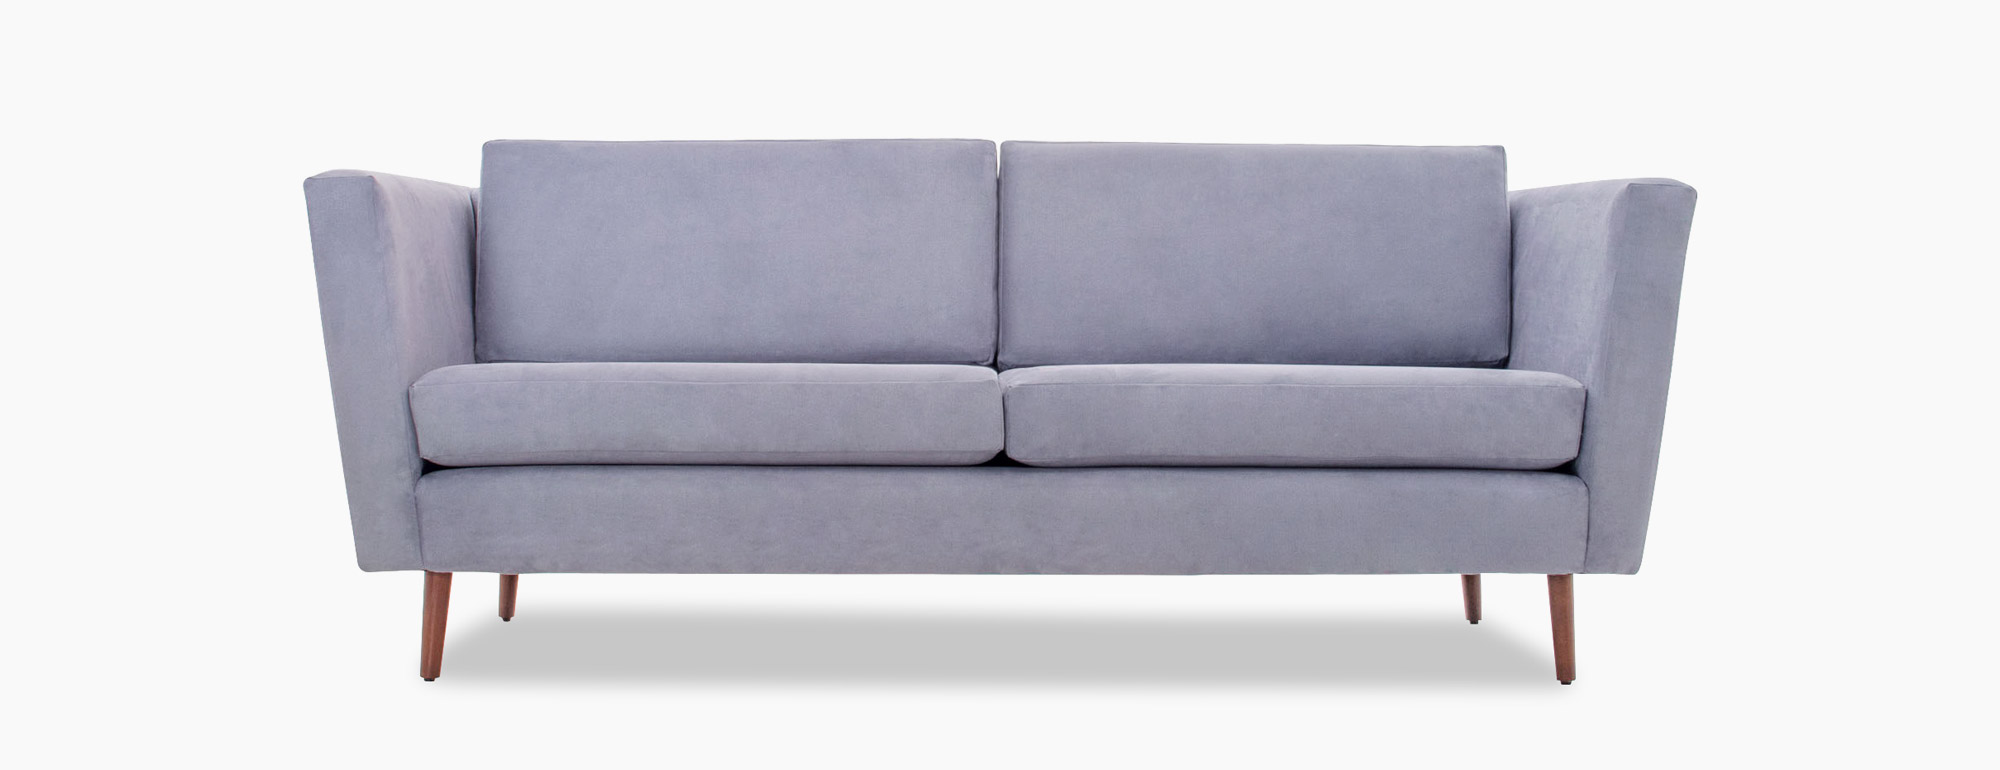 hero-deluna-sofa-1